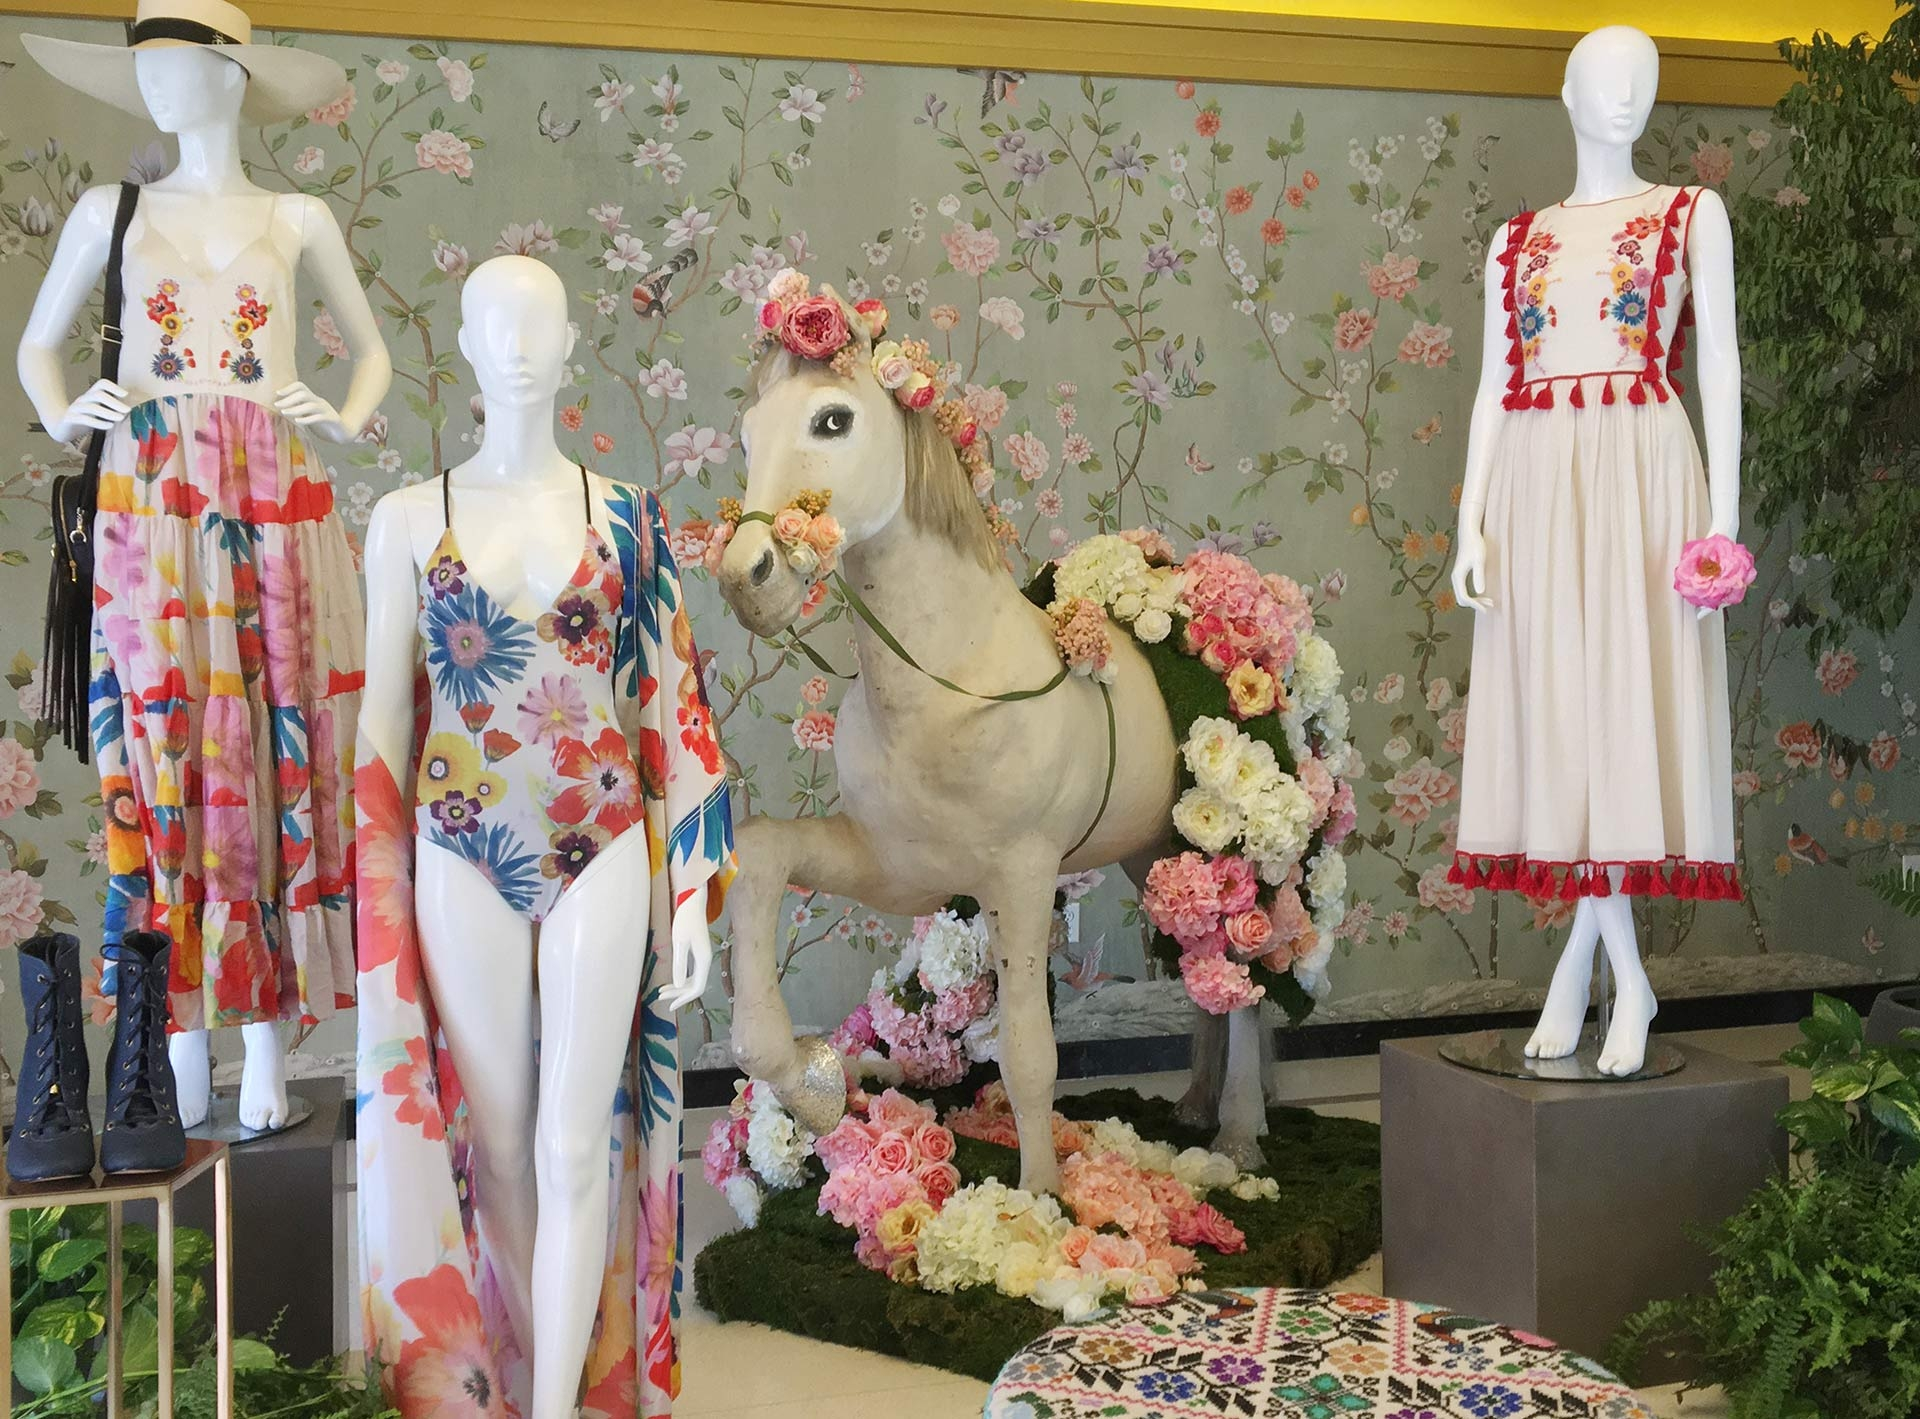 three mannequins in summer clothes and flowers